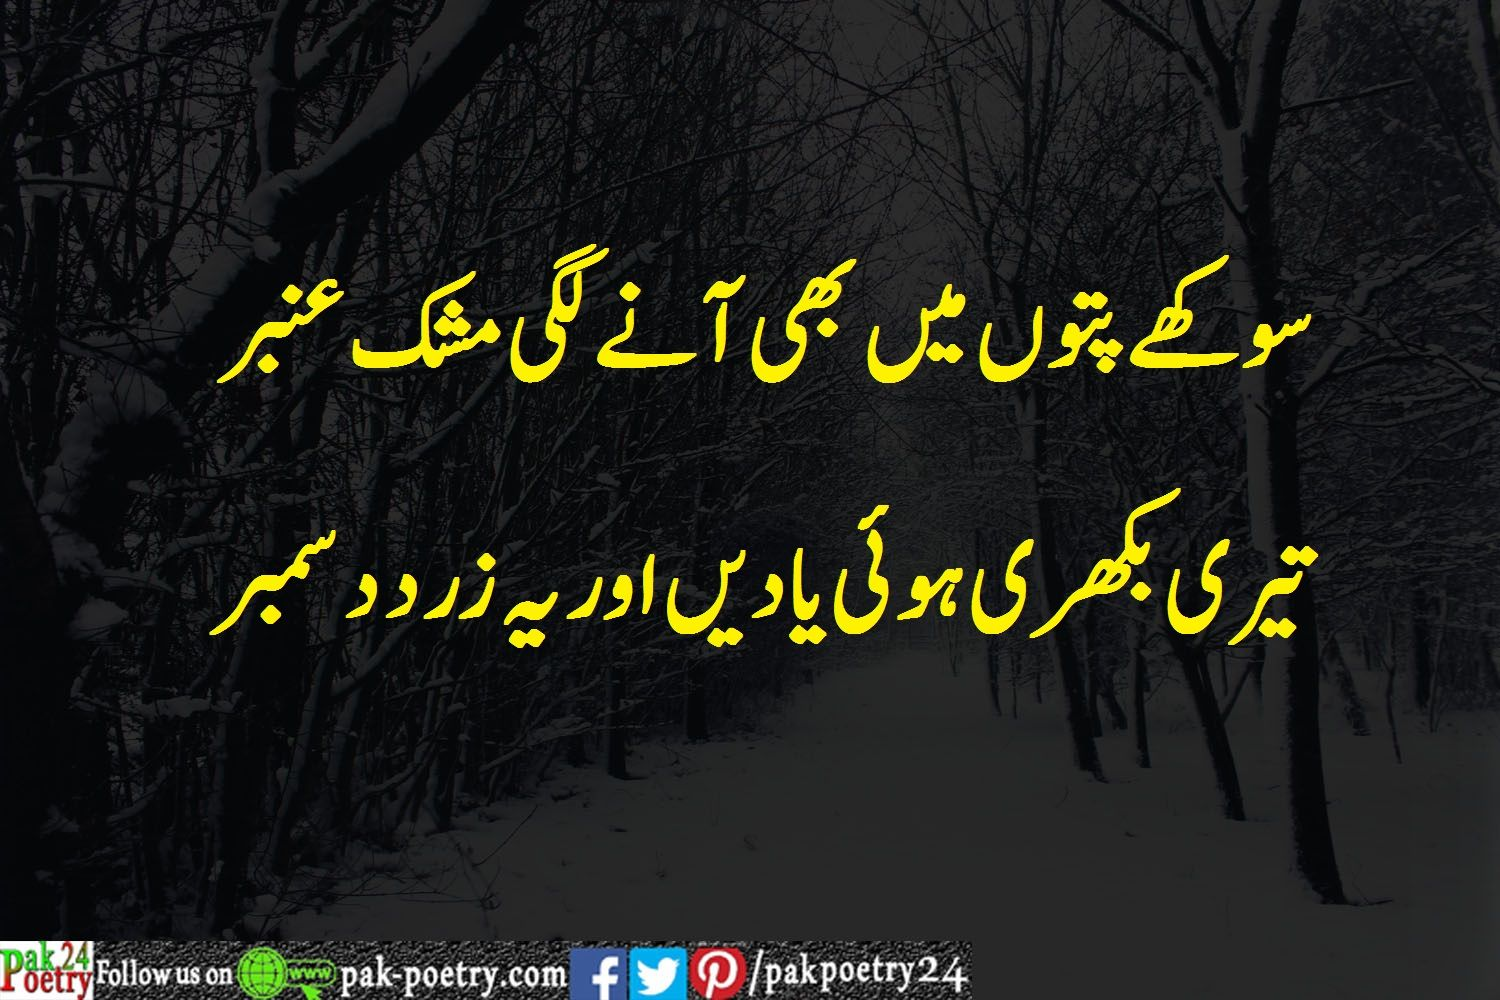 December Poetry Urdu - Top 5 Collection (With images ...